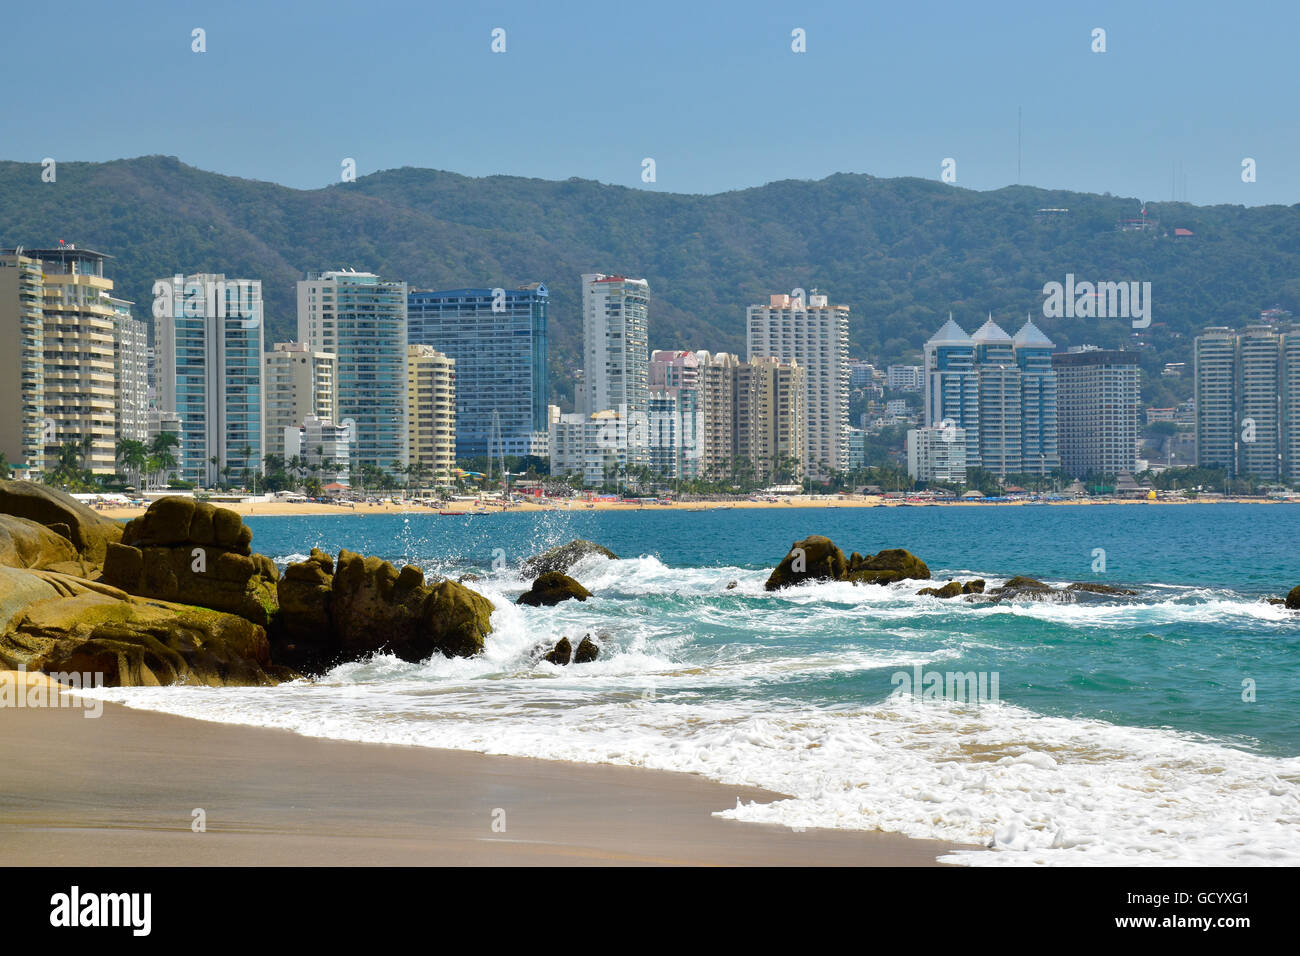 Pacific Ocean in Acapulco Bay and skyline of Acapulco, Mexico - Stock Image